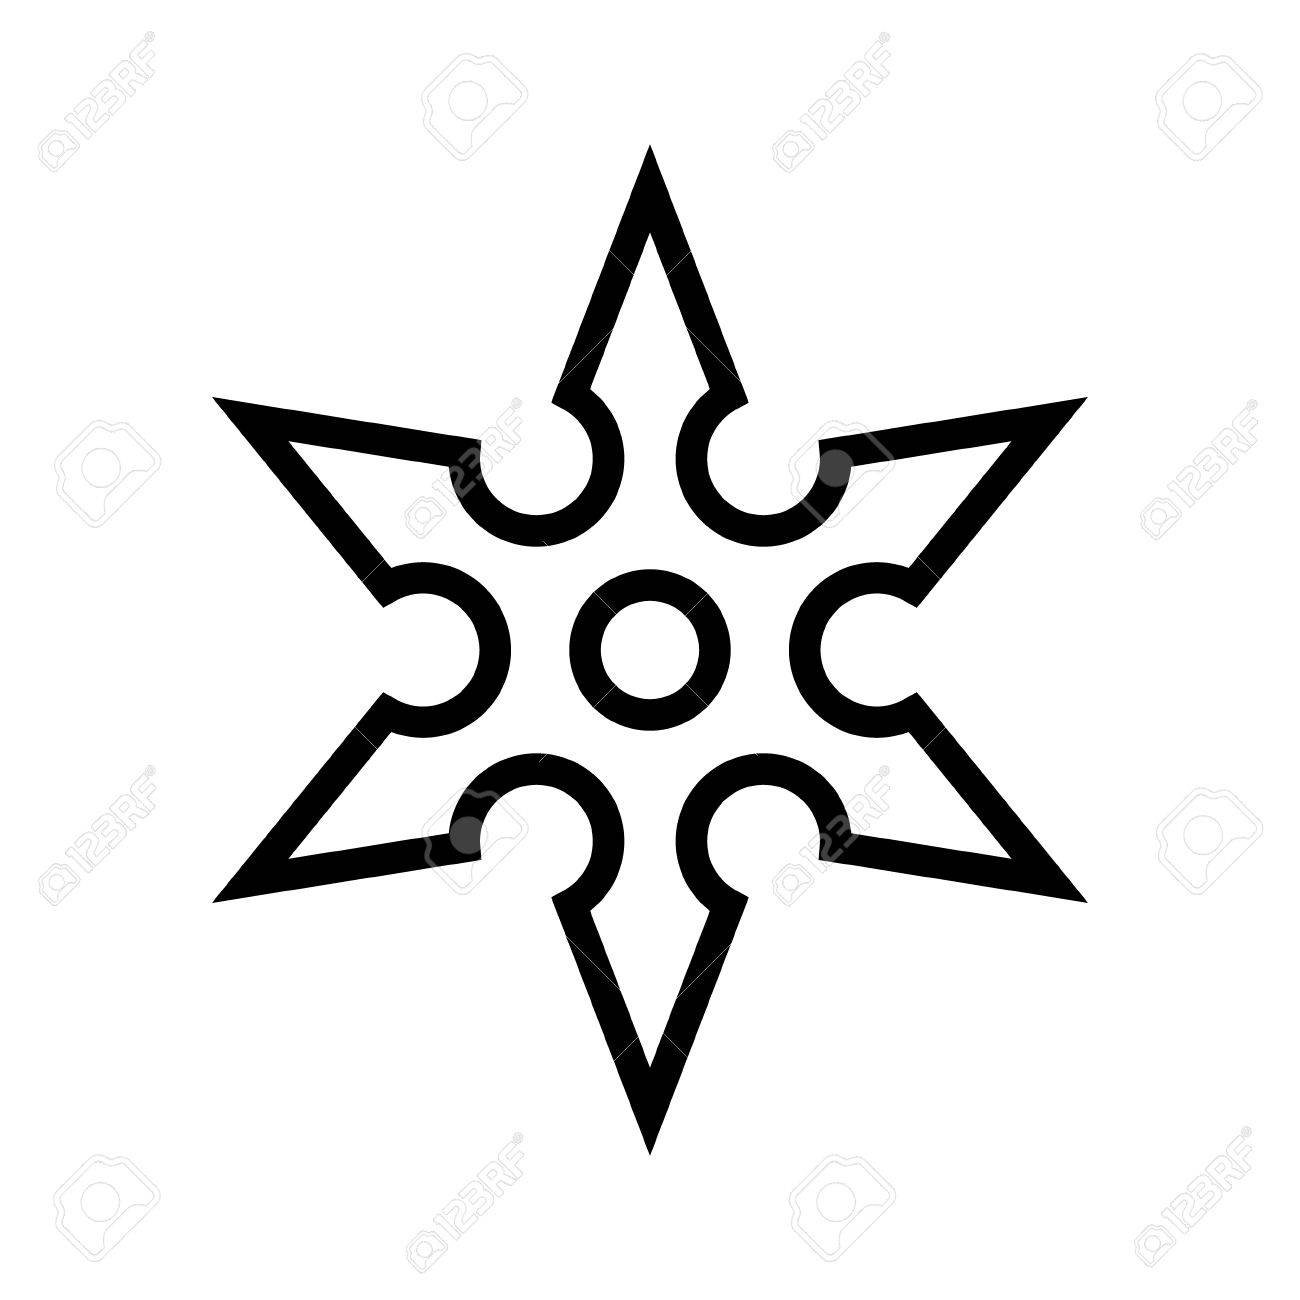 ninja shuriken throwing star line art icon for games and websites